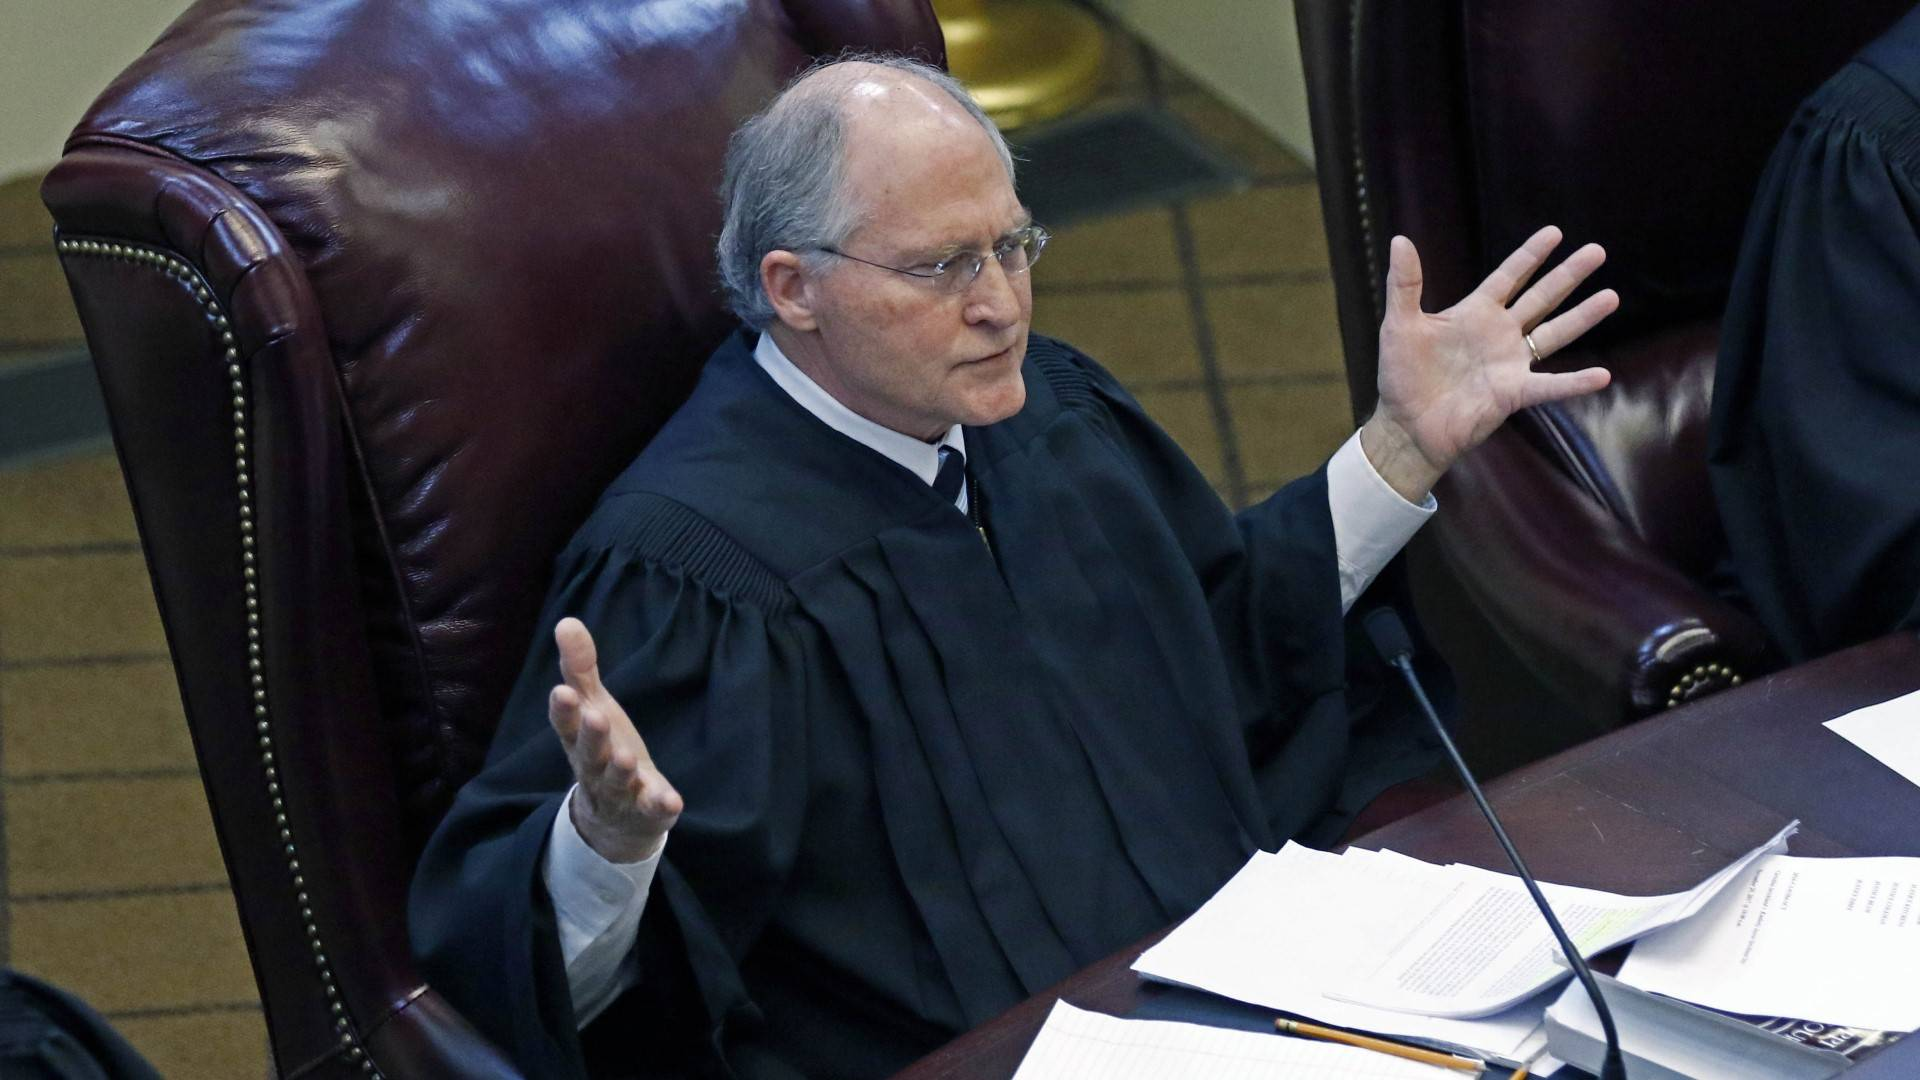 Mississippi chief justice: Time for another to lead court